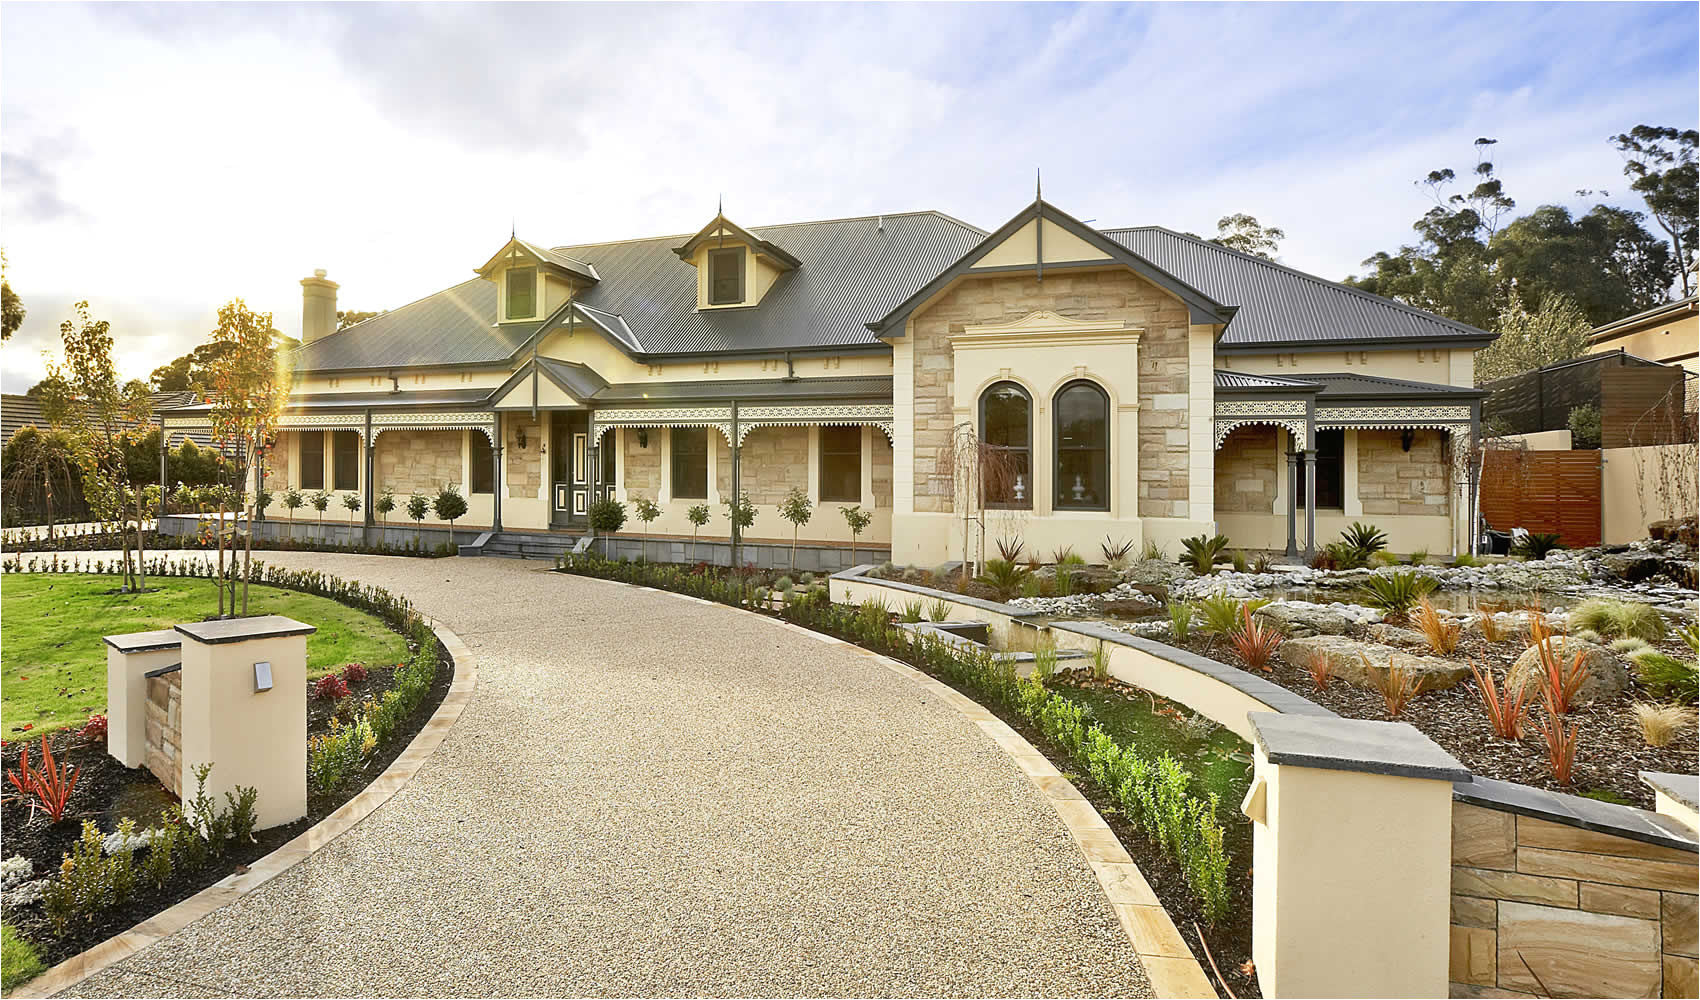 federation style home builder perth